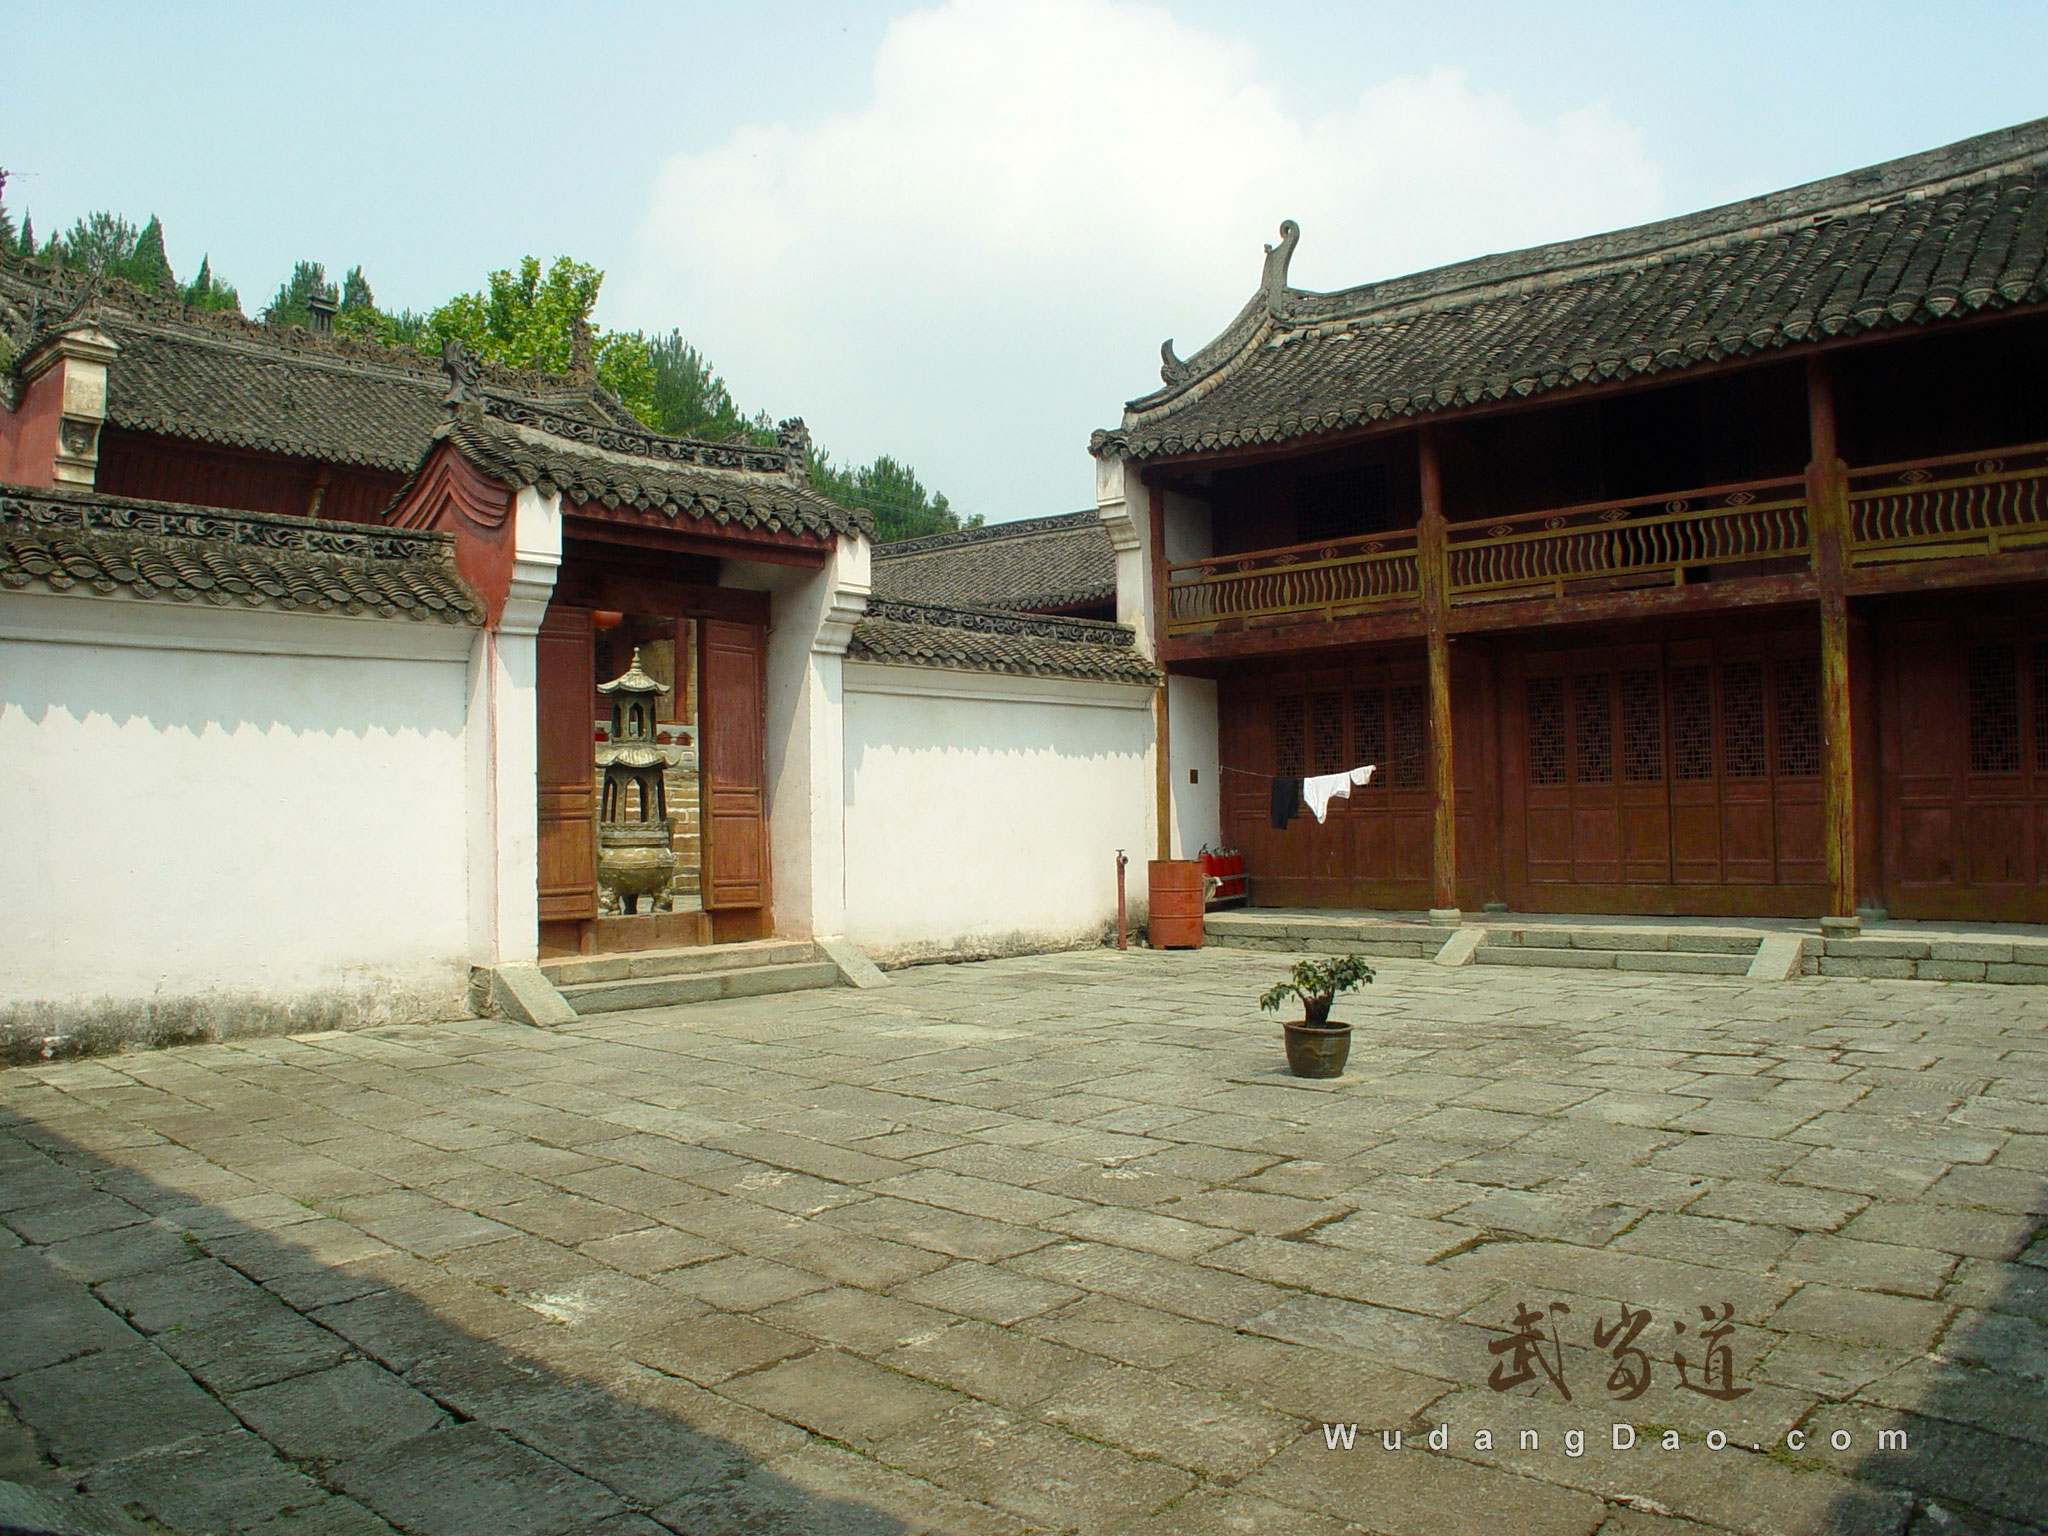 Wudang-Grind-Needle-Temple3.jpg